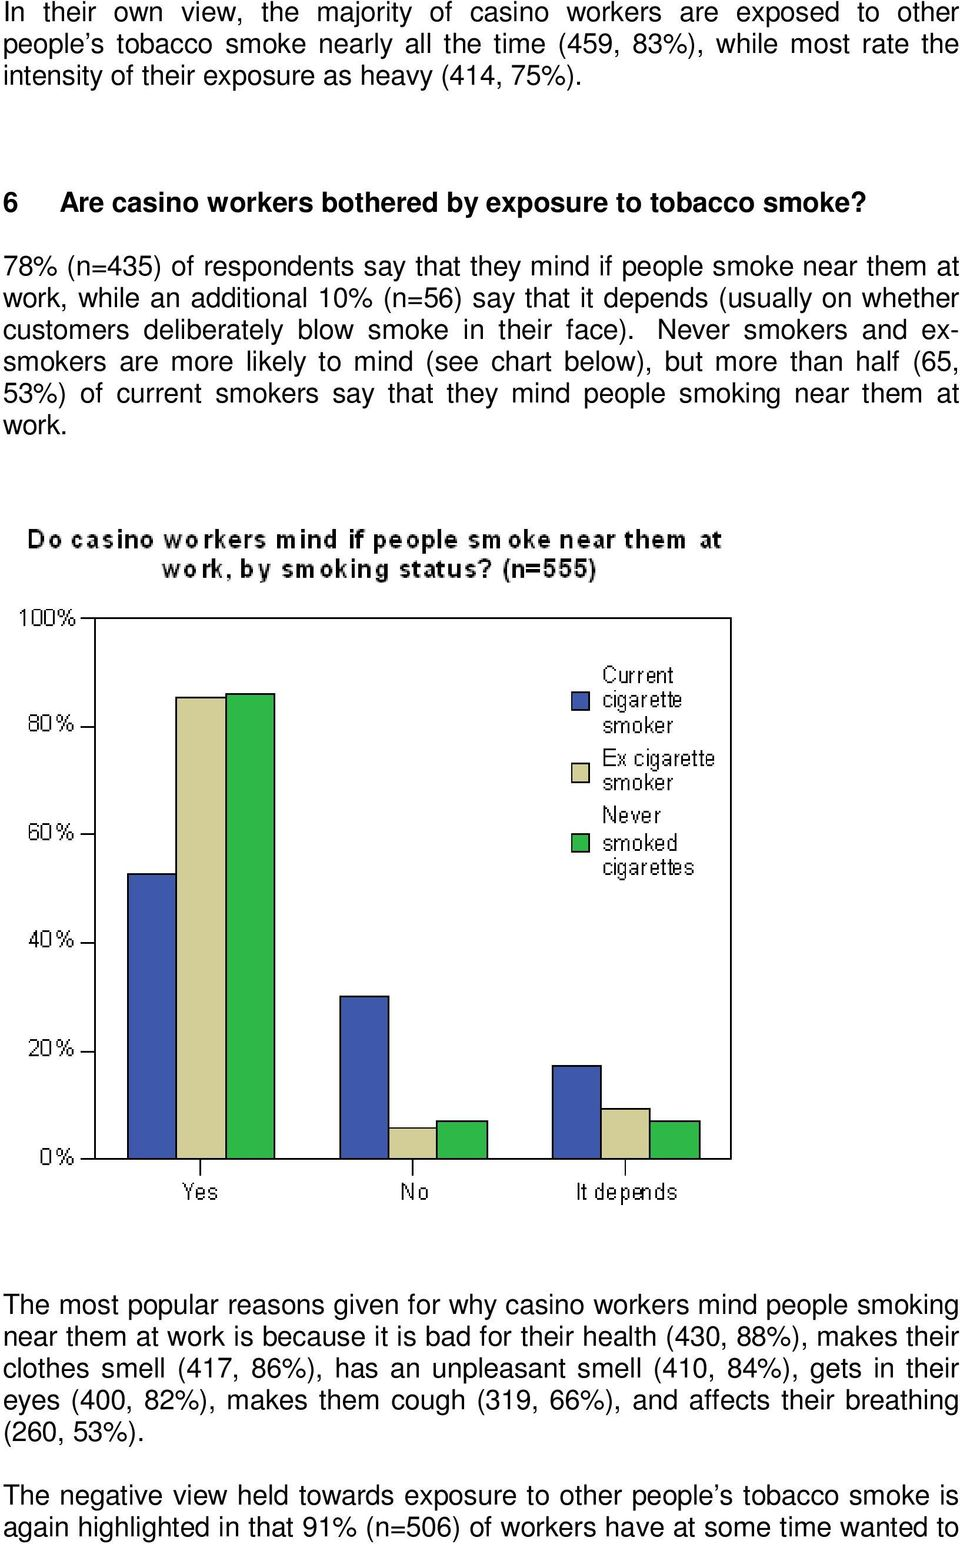 78% (n=435) of respondents say that they mind if people smoke near them at work, while an additional 10% (n=56) say that it depends (usually on whether customers deliberately blow smoke in their